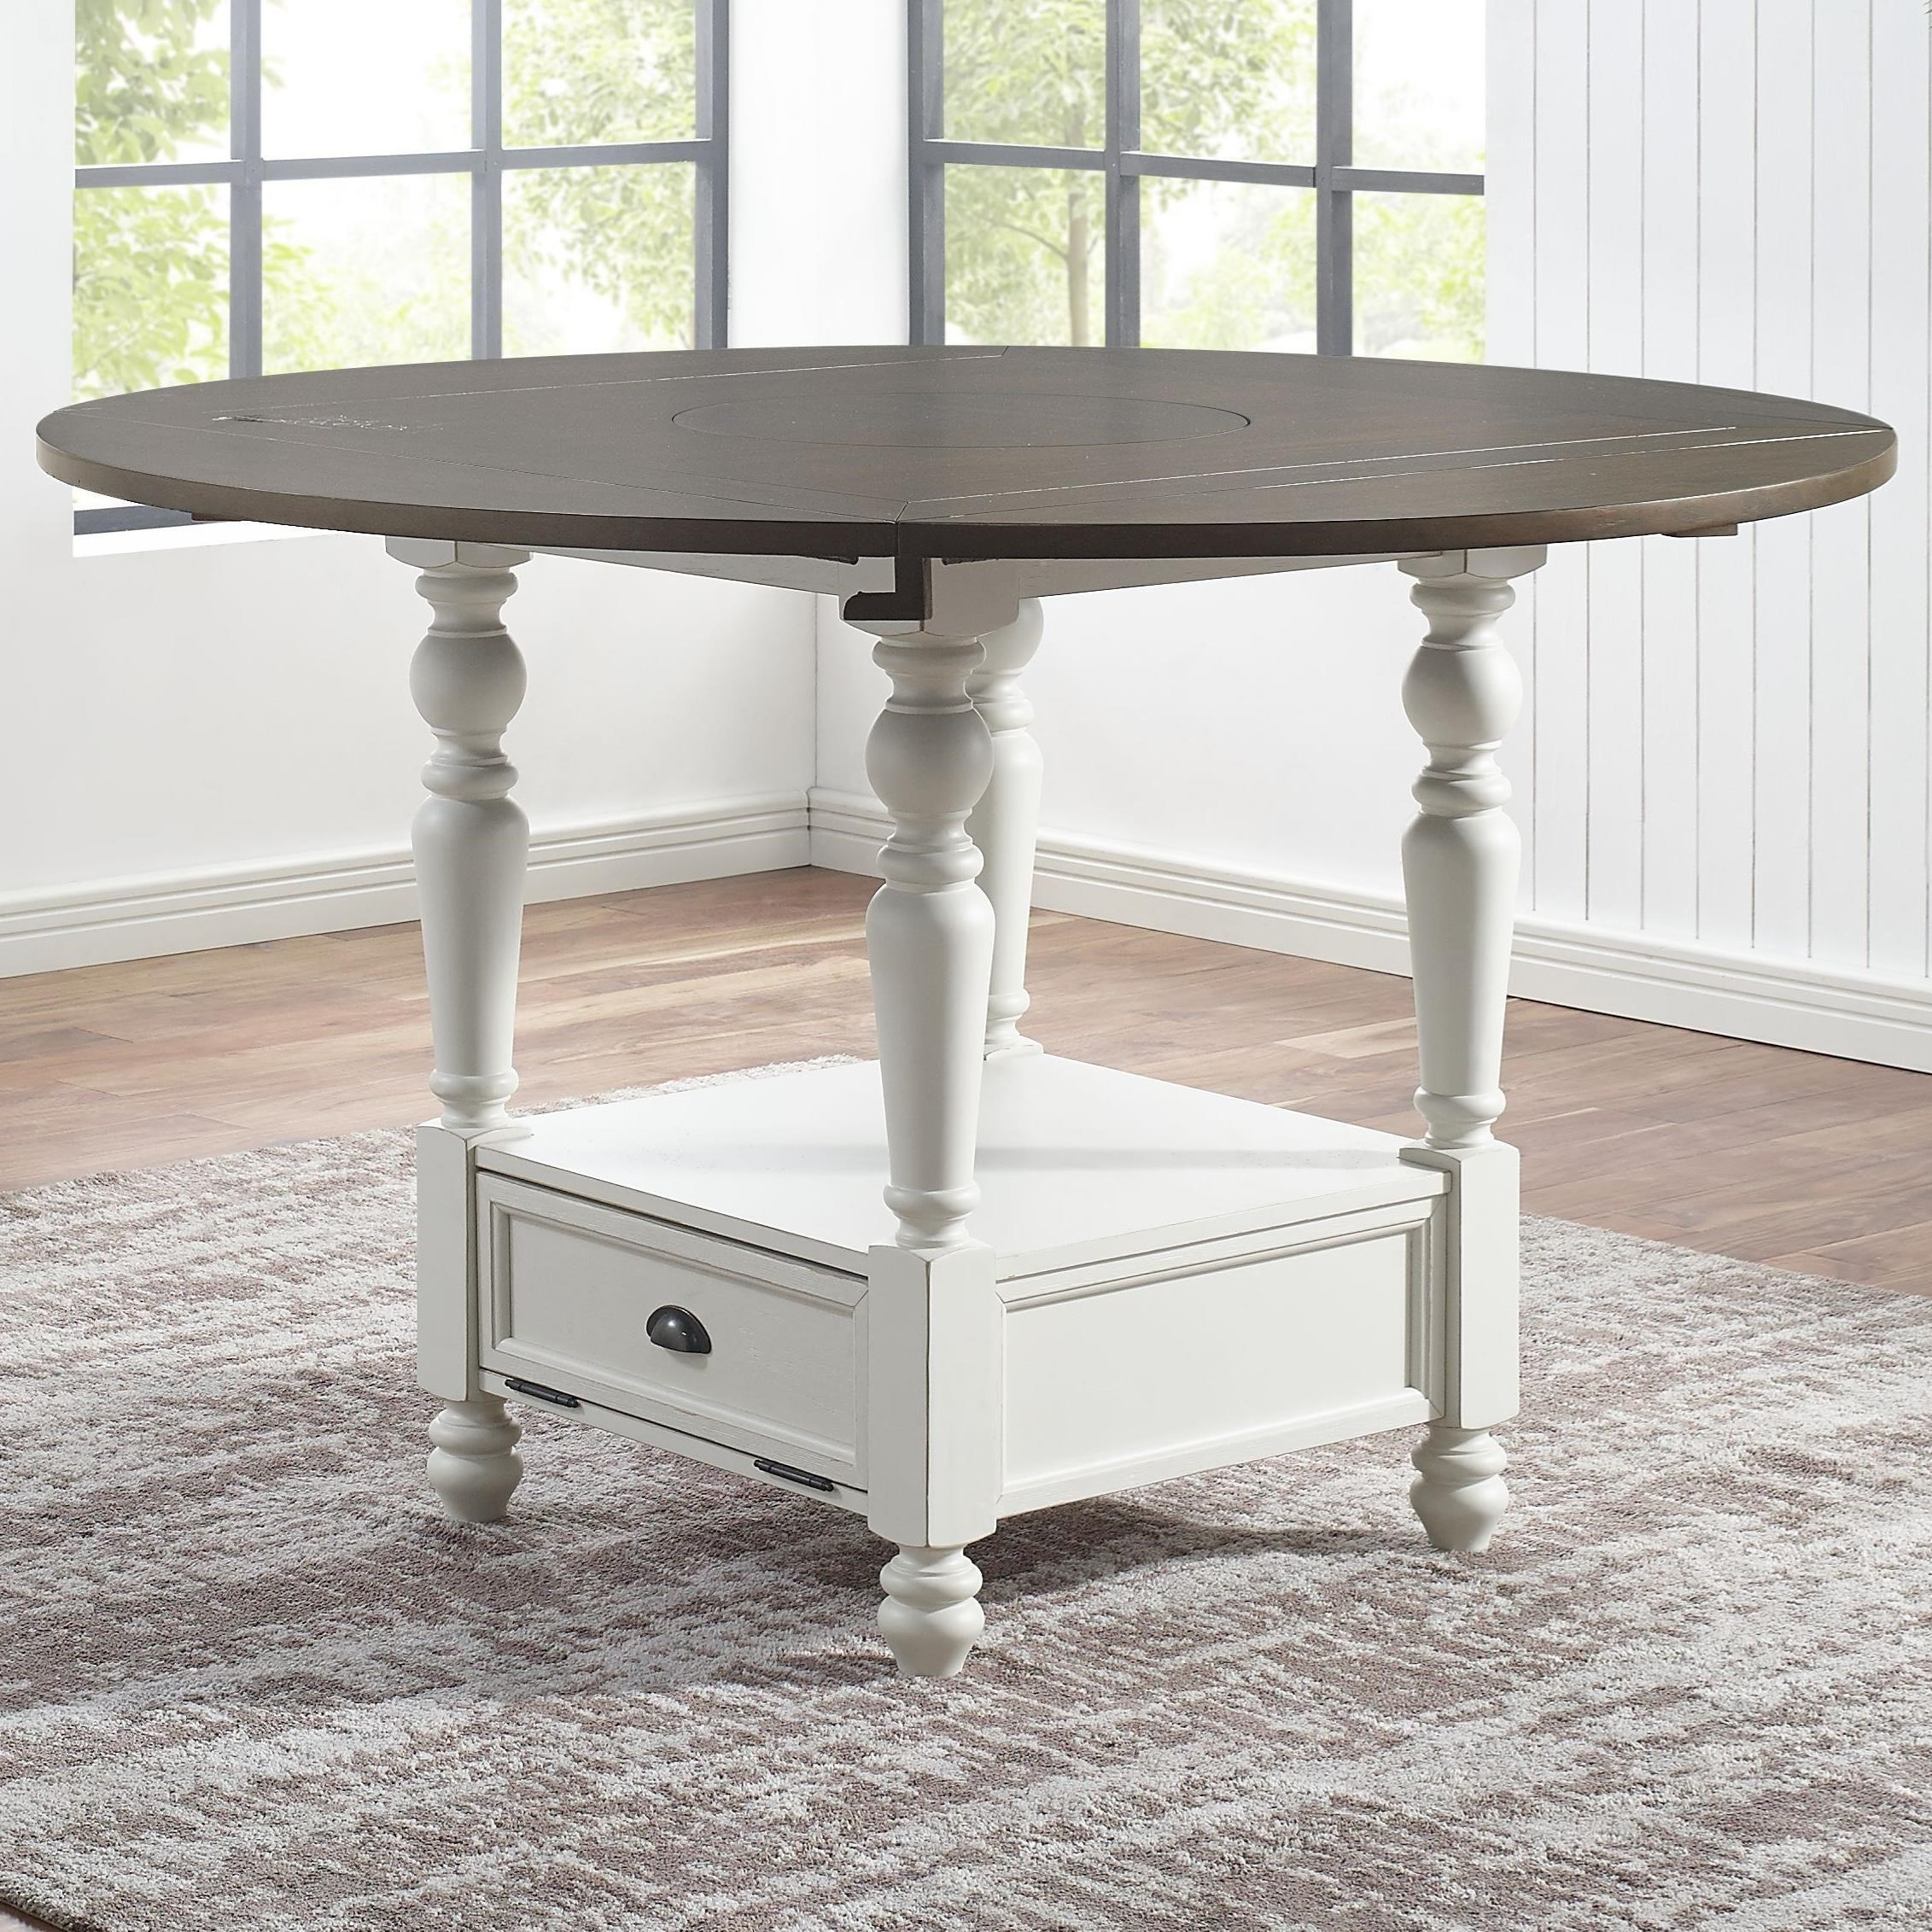 Joanna Round Counter Table by Steve Silver at Walker's Furniture